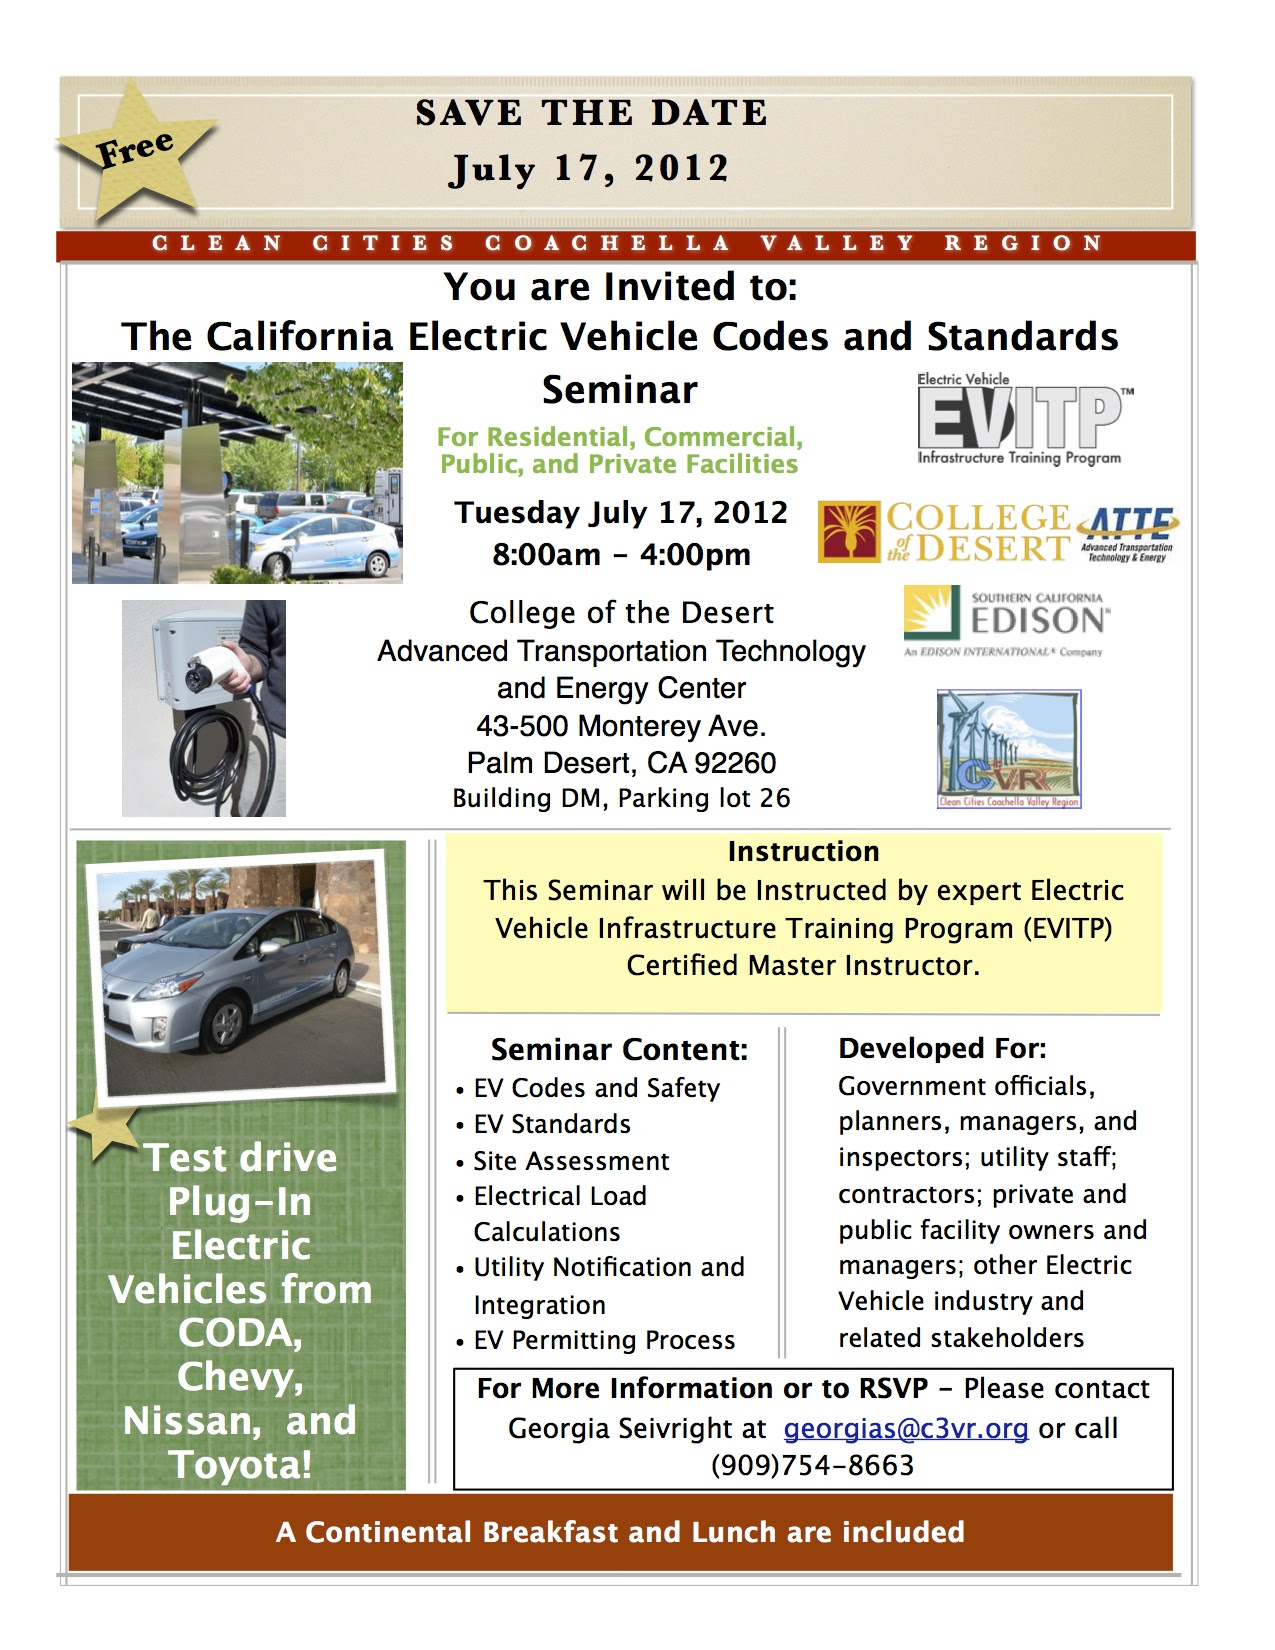 California Electric Vehicle Codes & Standards Seminar